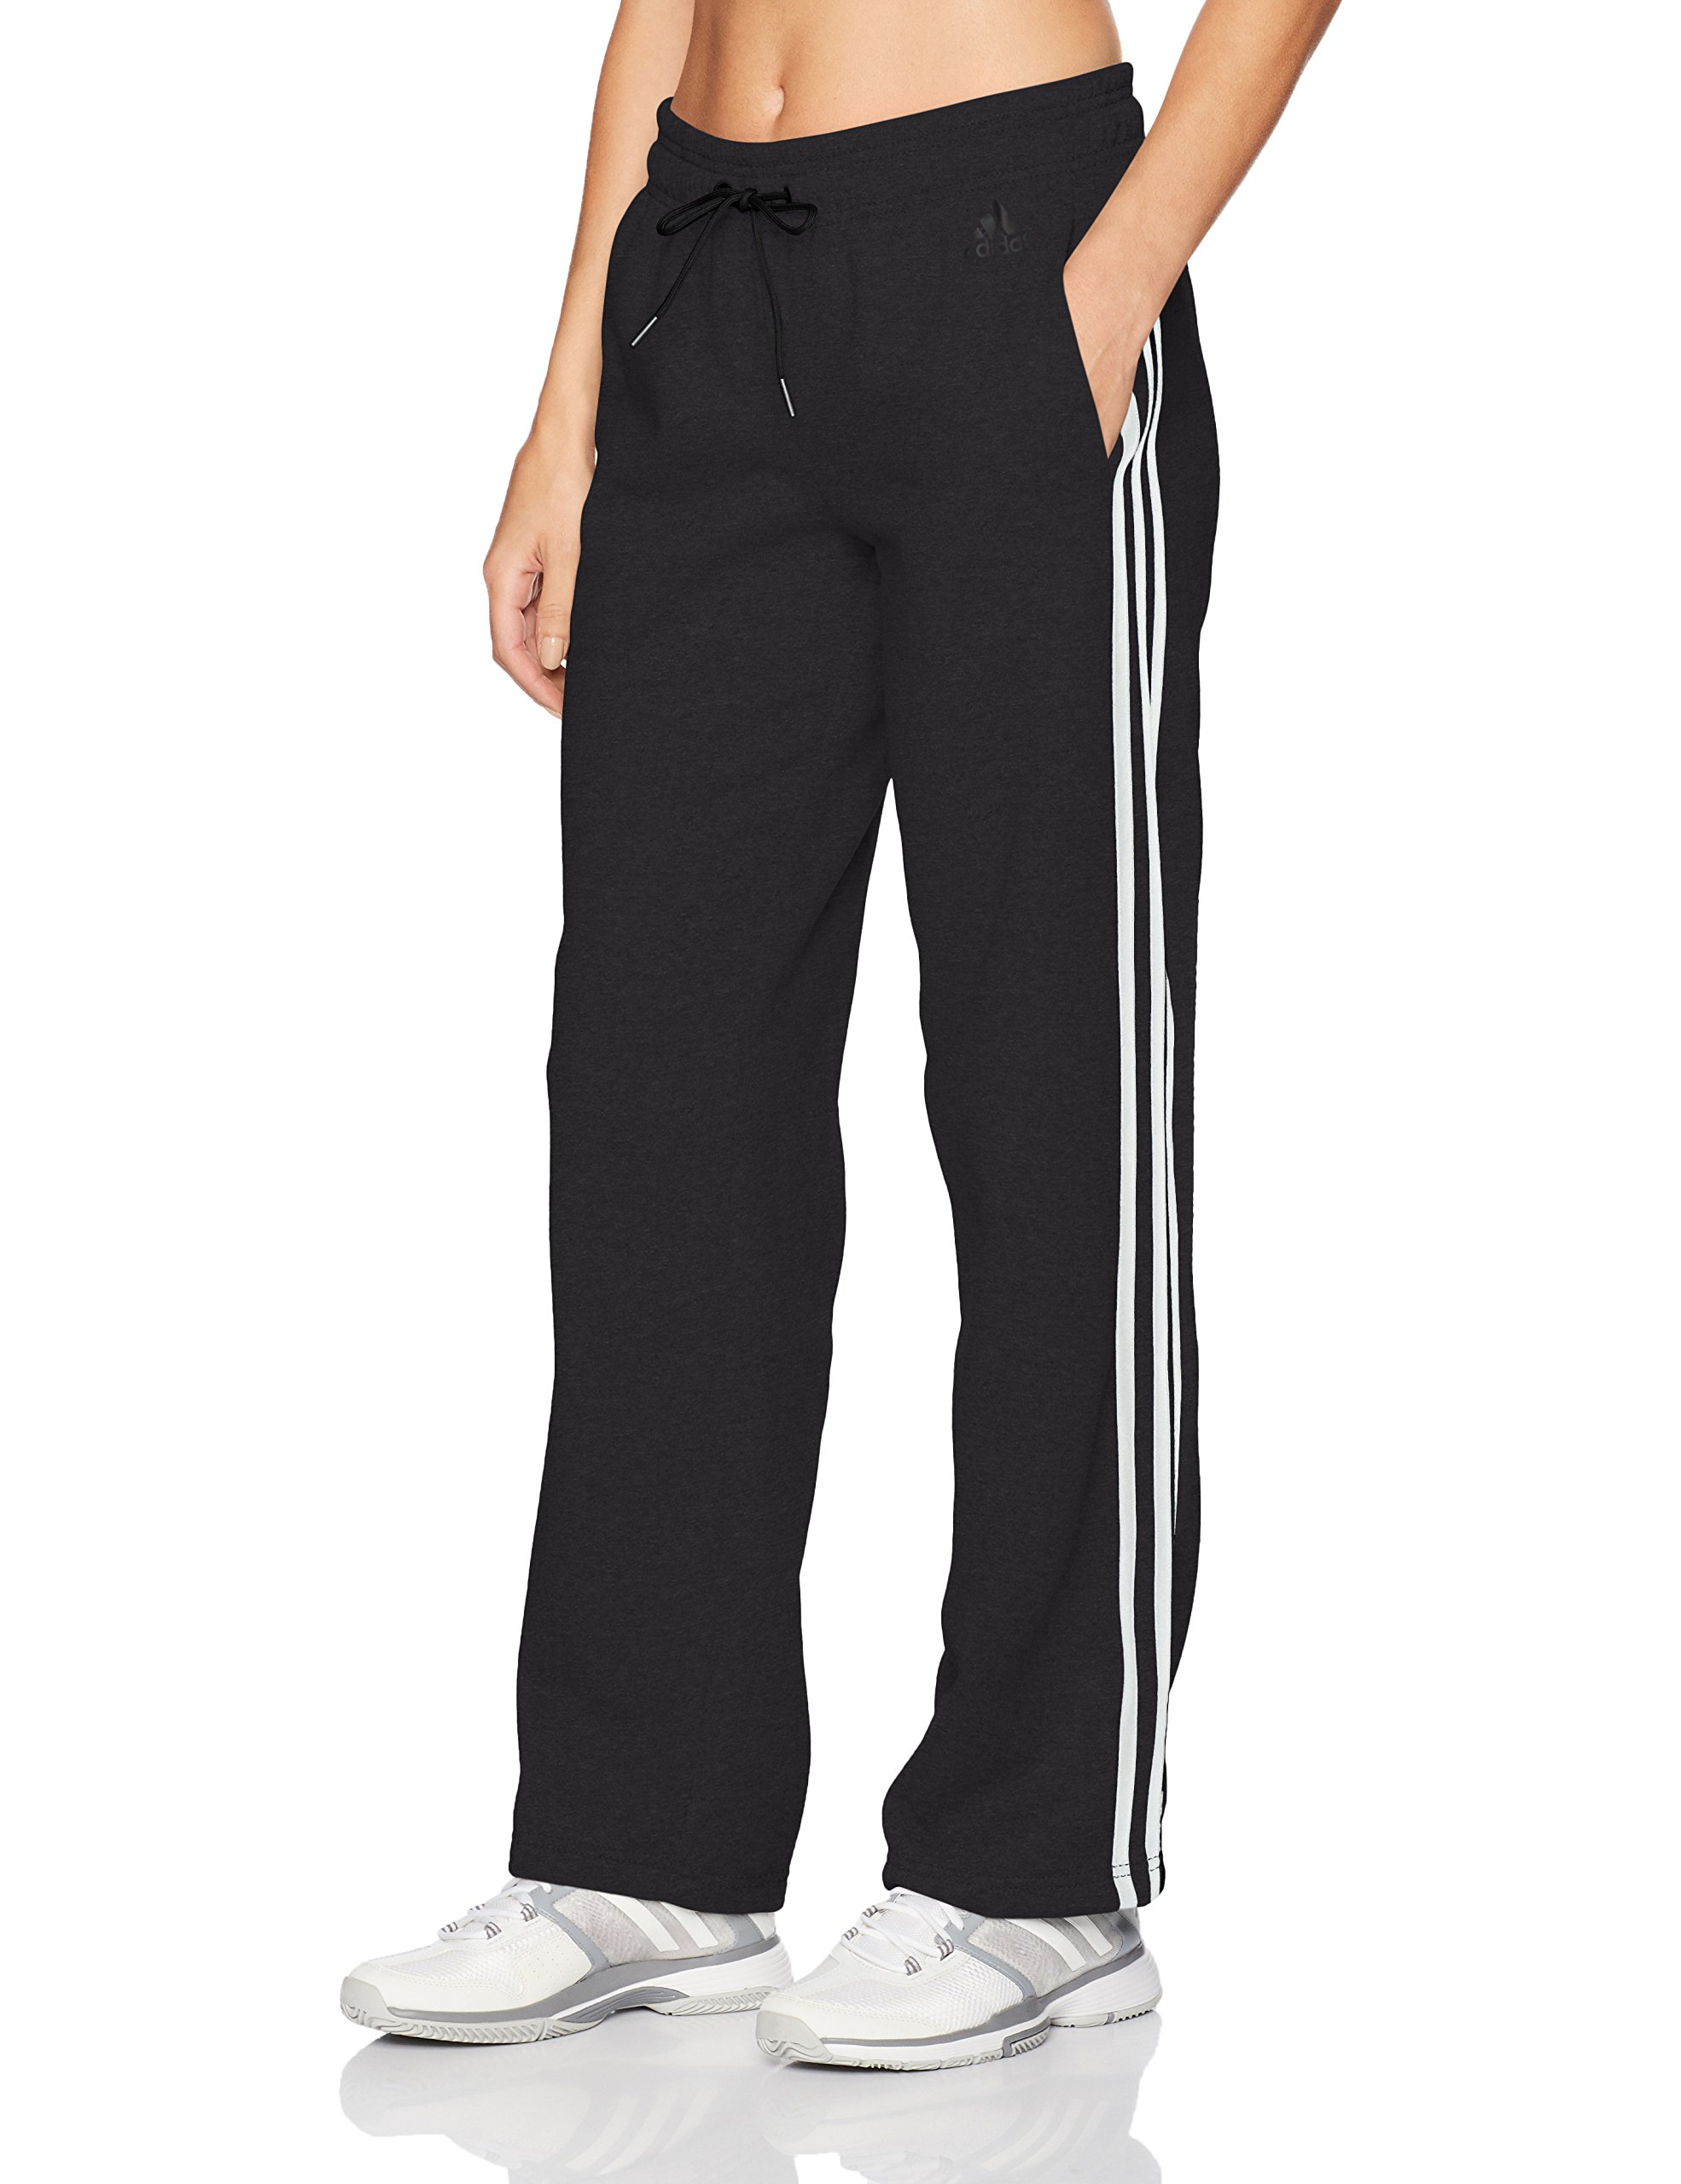 bc2d488ce910fb adidas Women's Essentials Cotton Fleece 3 Stripe Open Hem Pants product  image